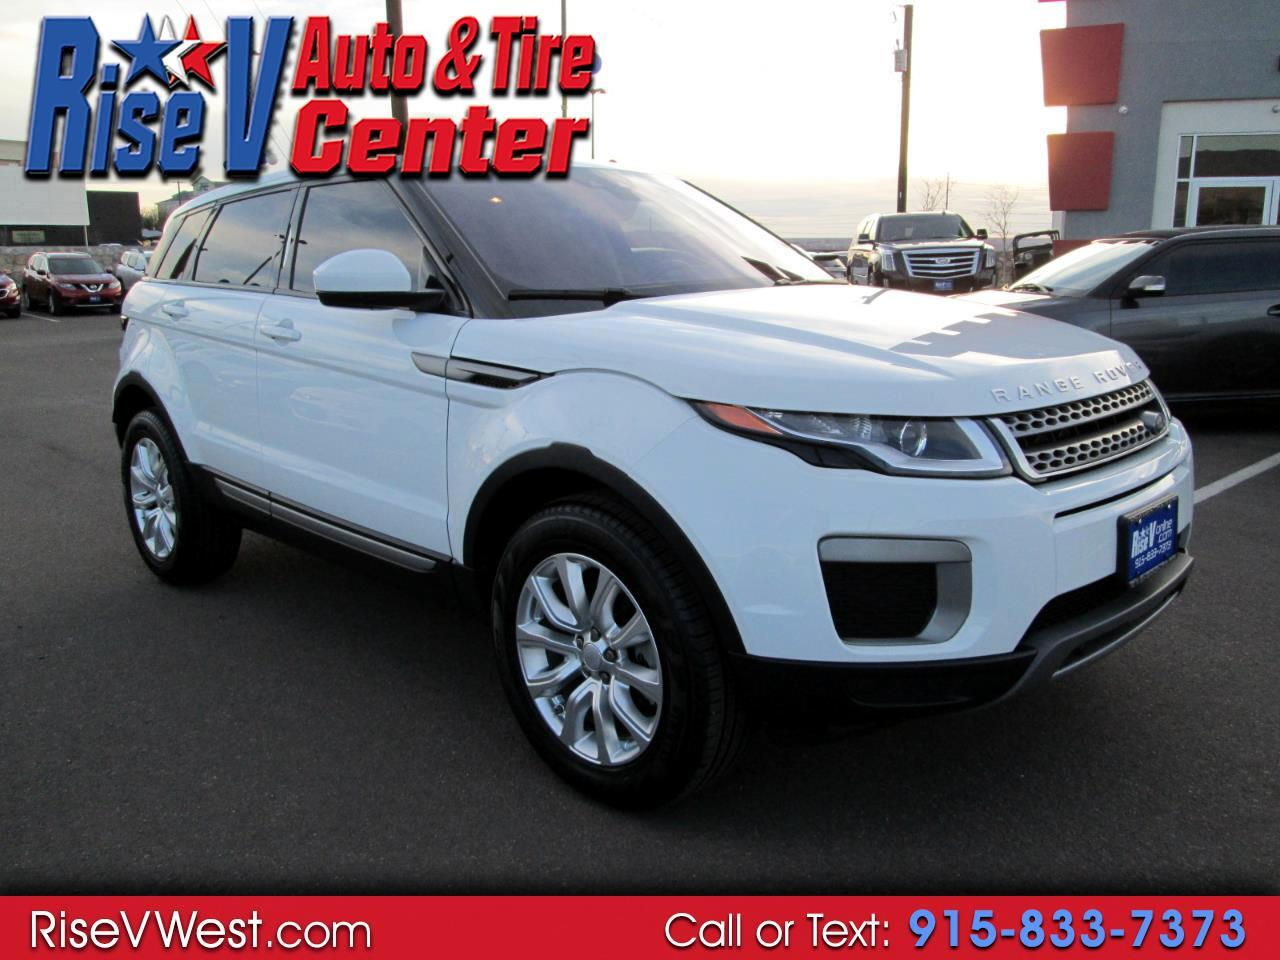 2017 Land Rover Range Rover Evoque 5 Door SE